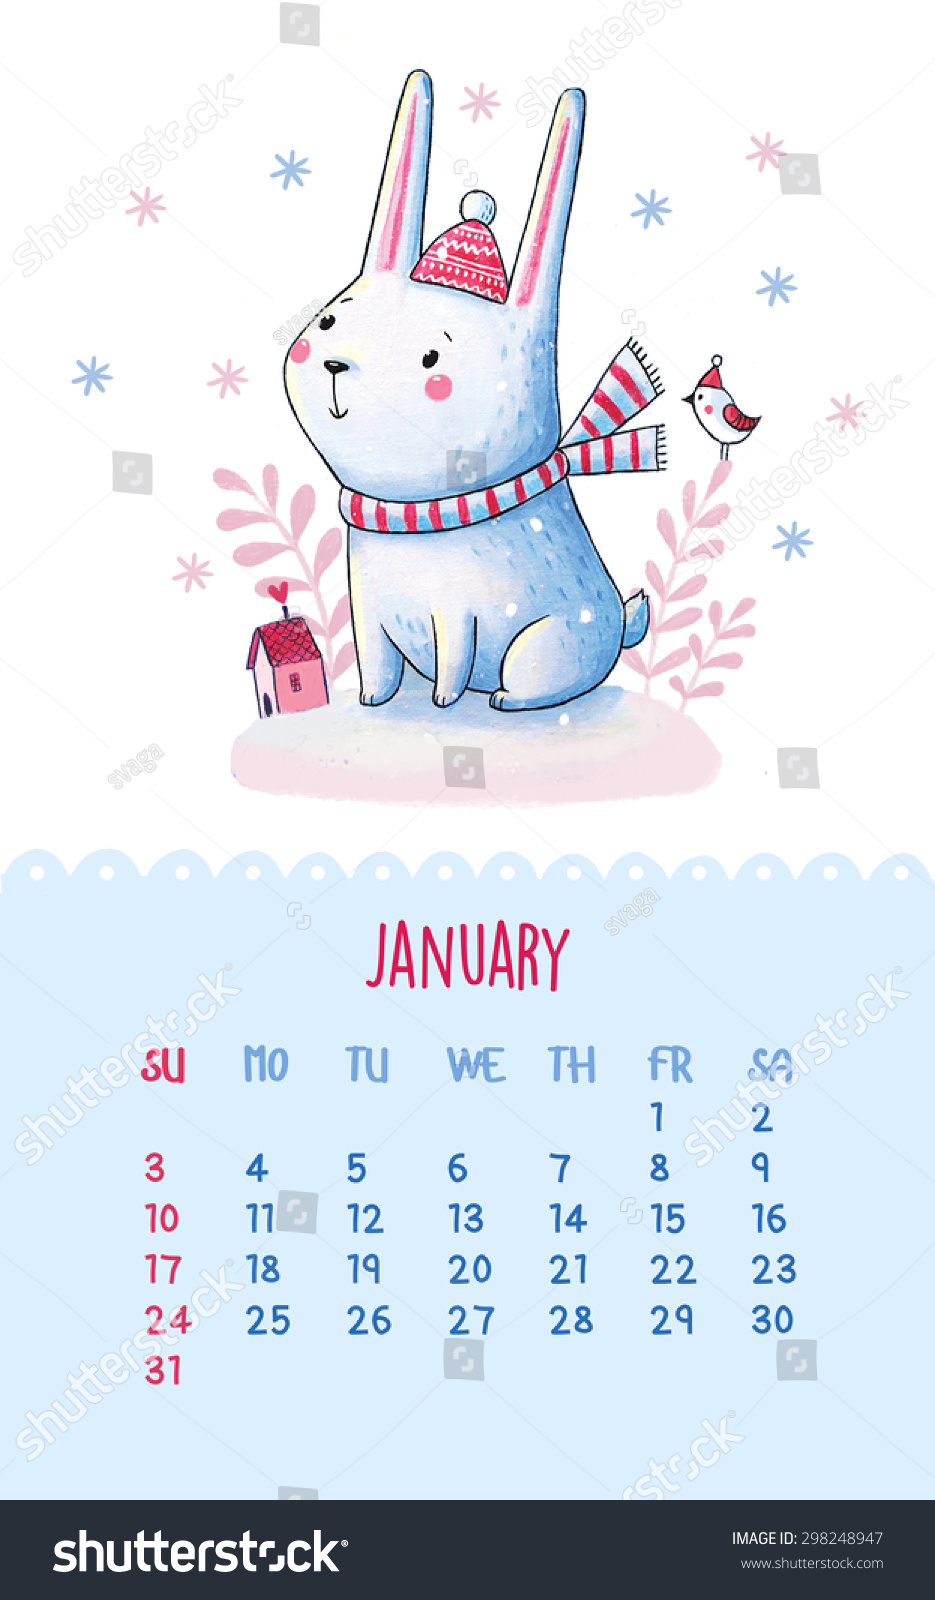 Calendar Drawing Cartoon : Calendar january hand drawing illustration with